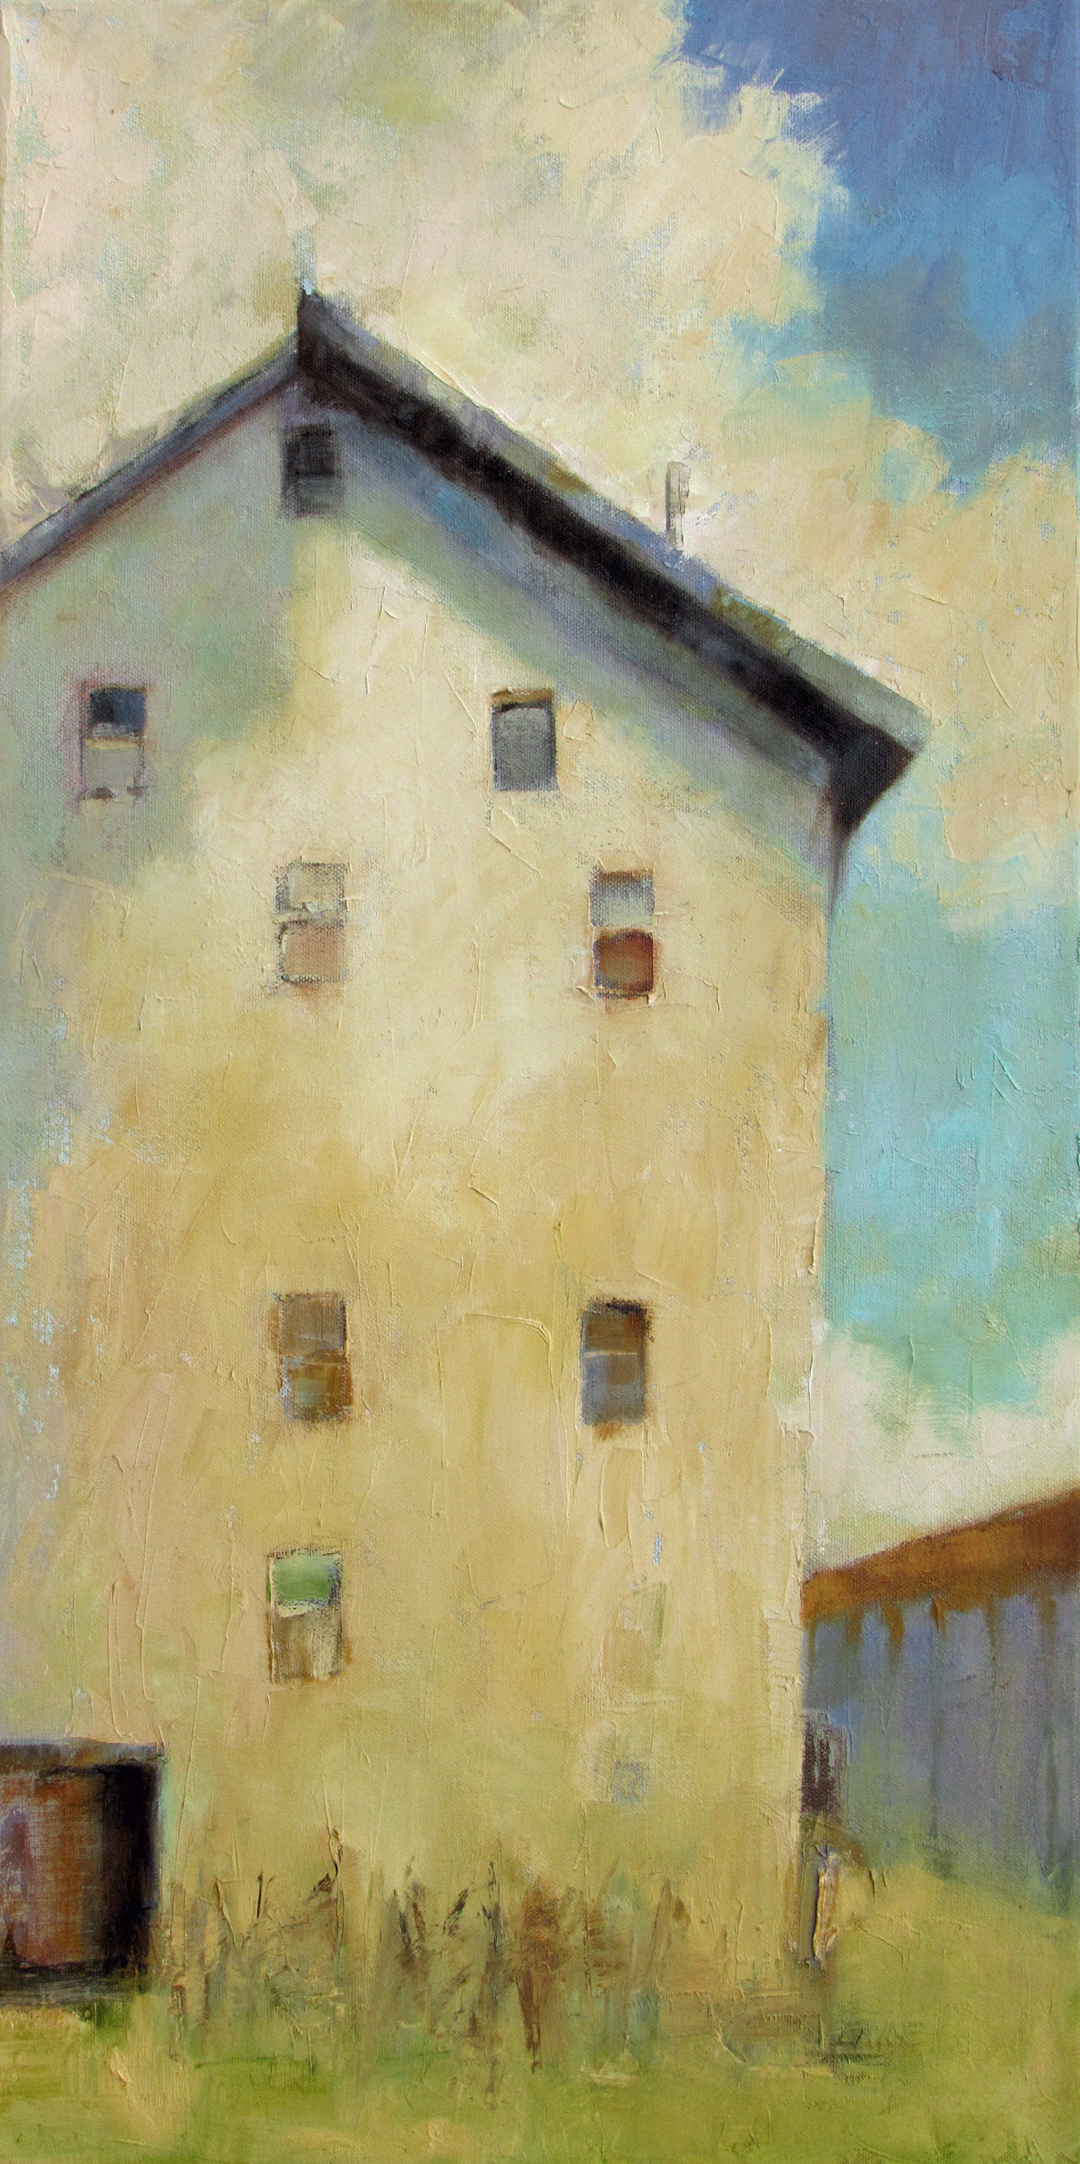 This Old House#Oil on Canvas#30 x 15 inches#$1,150